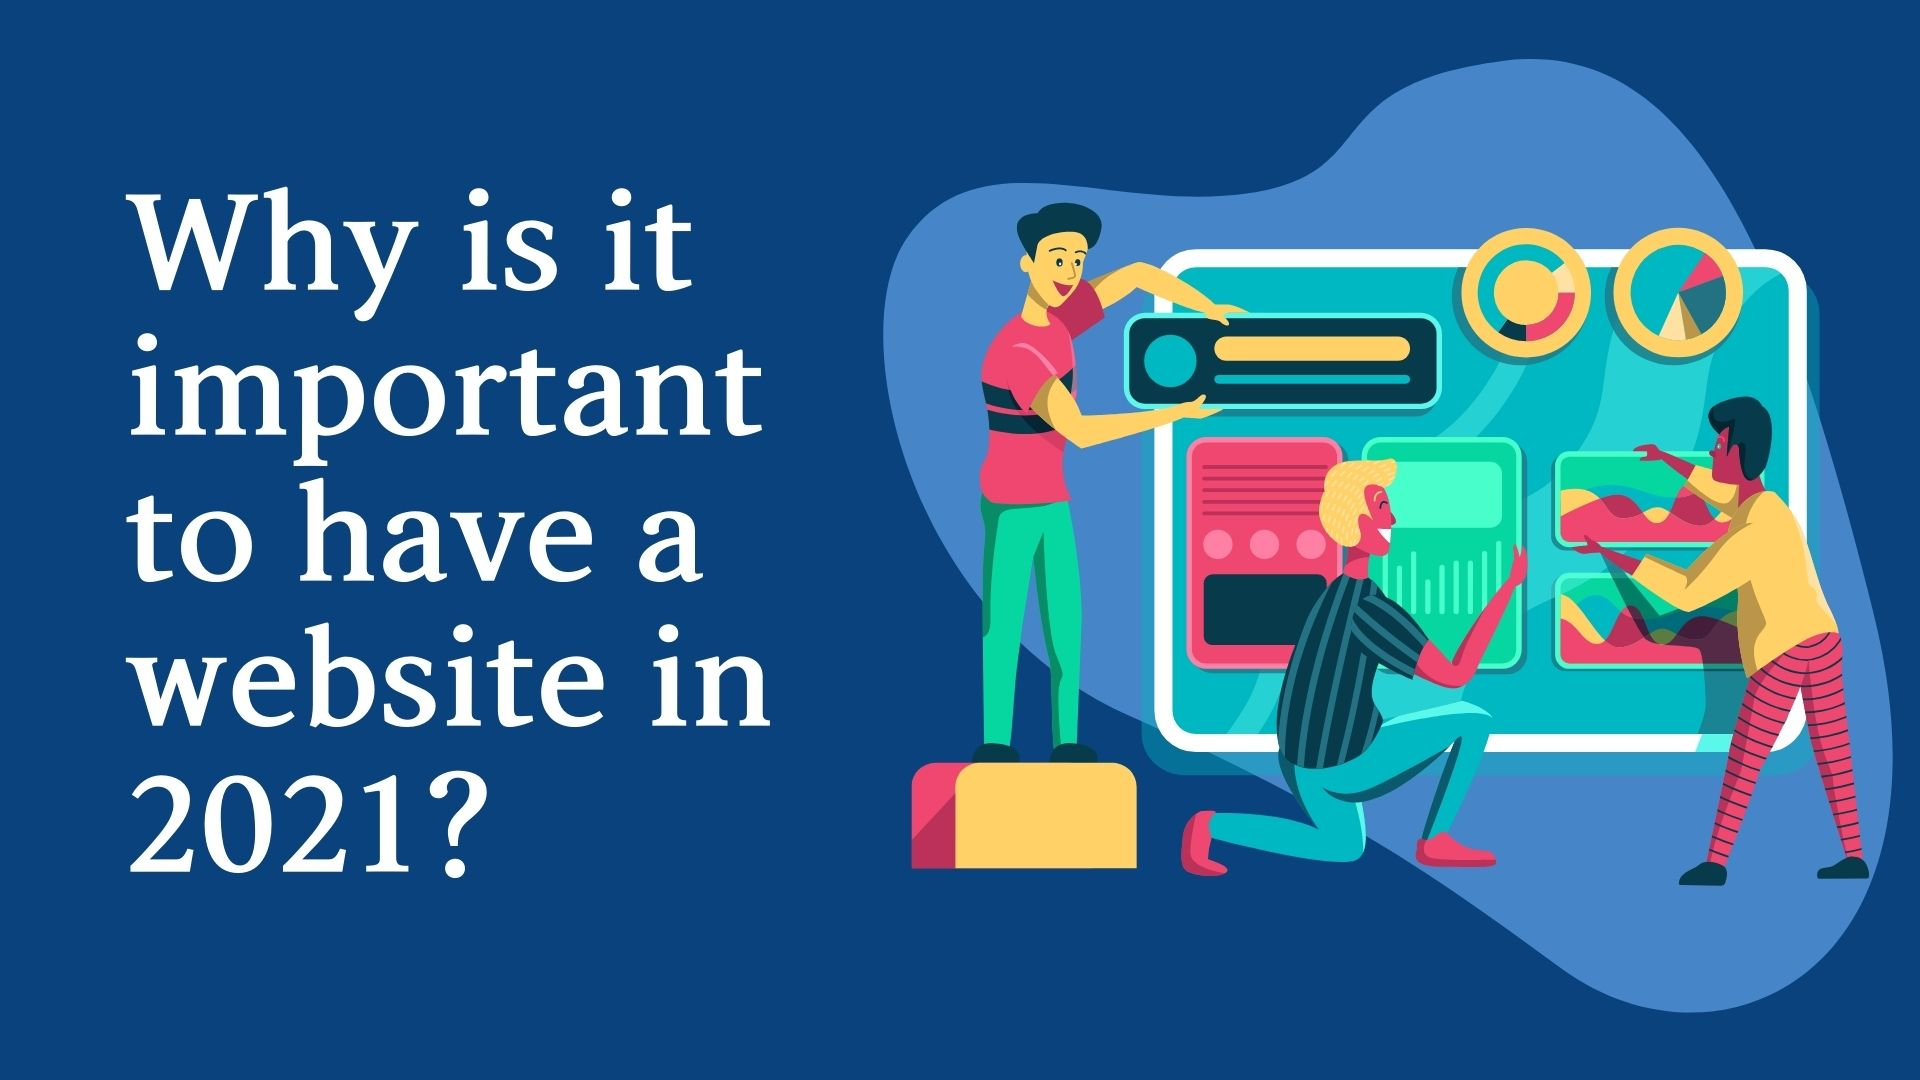 Why is it important to have a website in 2021?